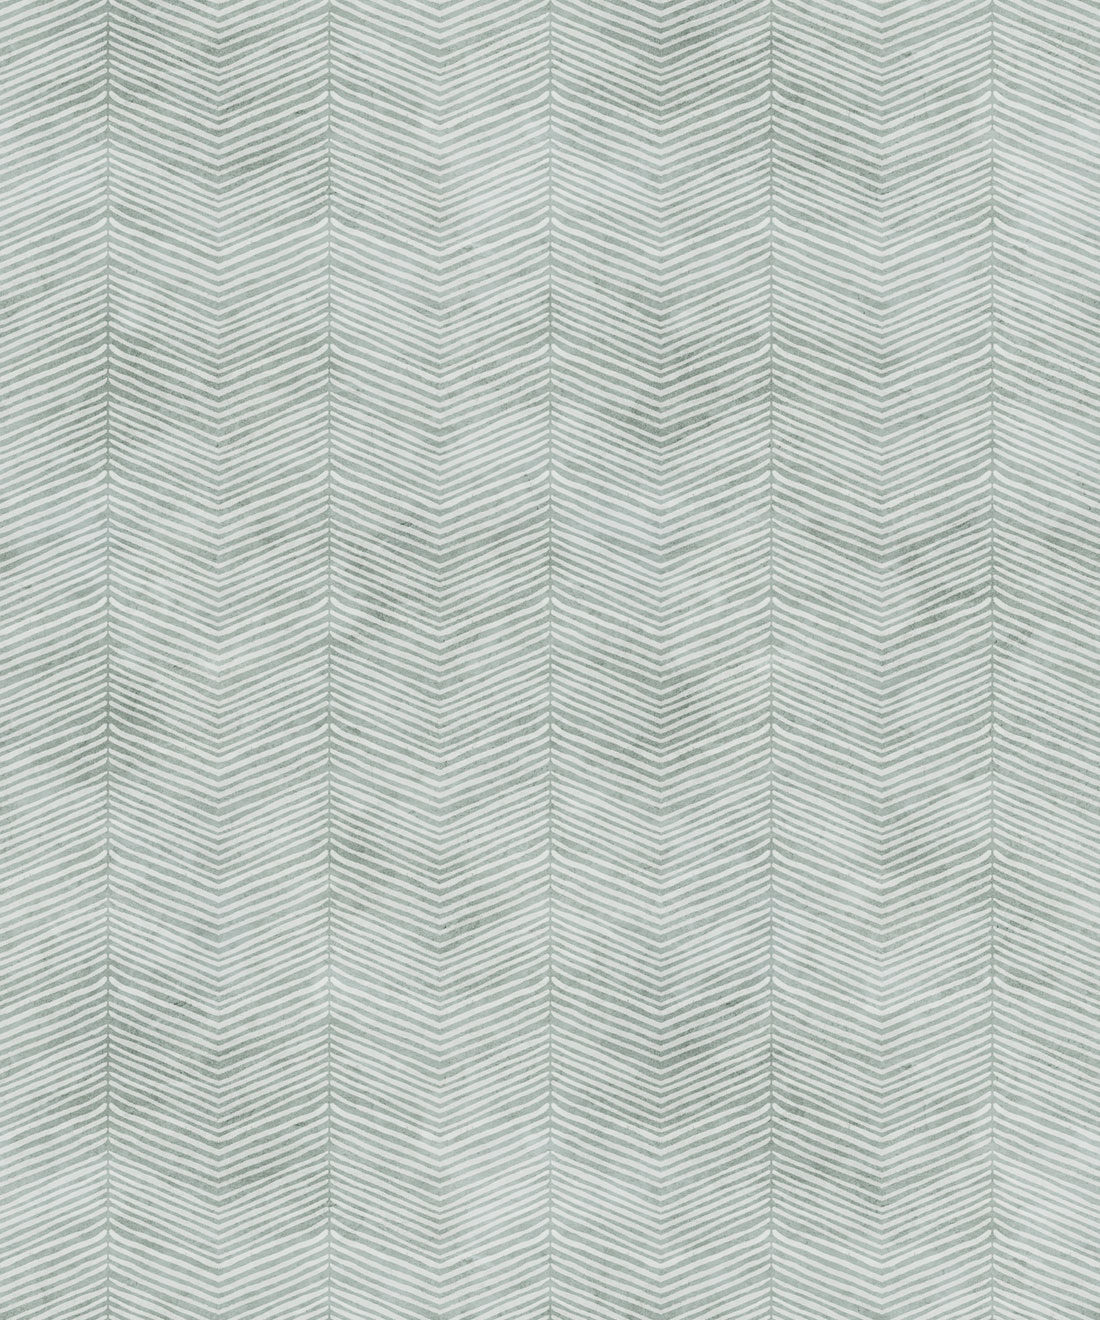 Herringbone Seabreeze